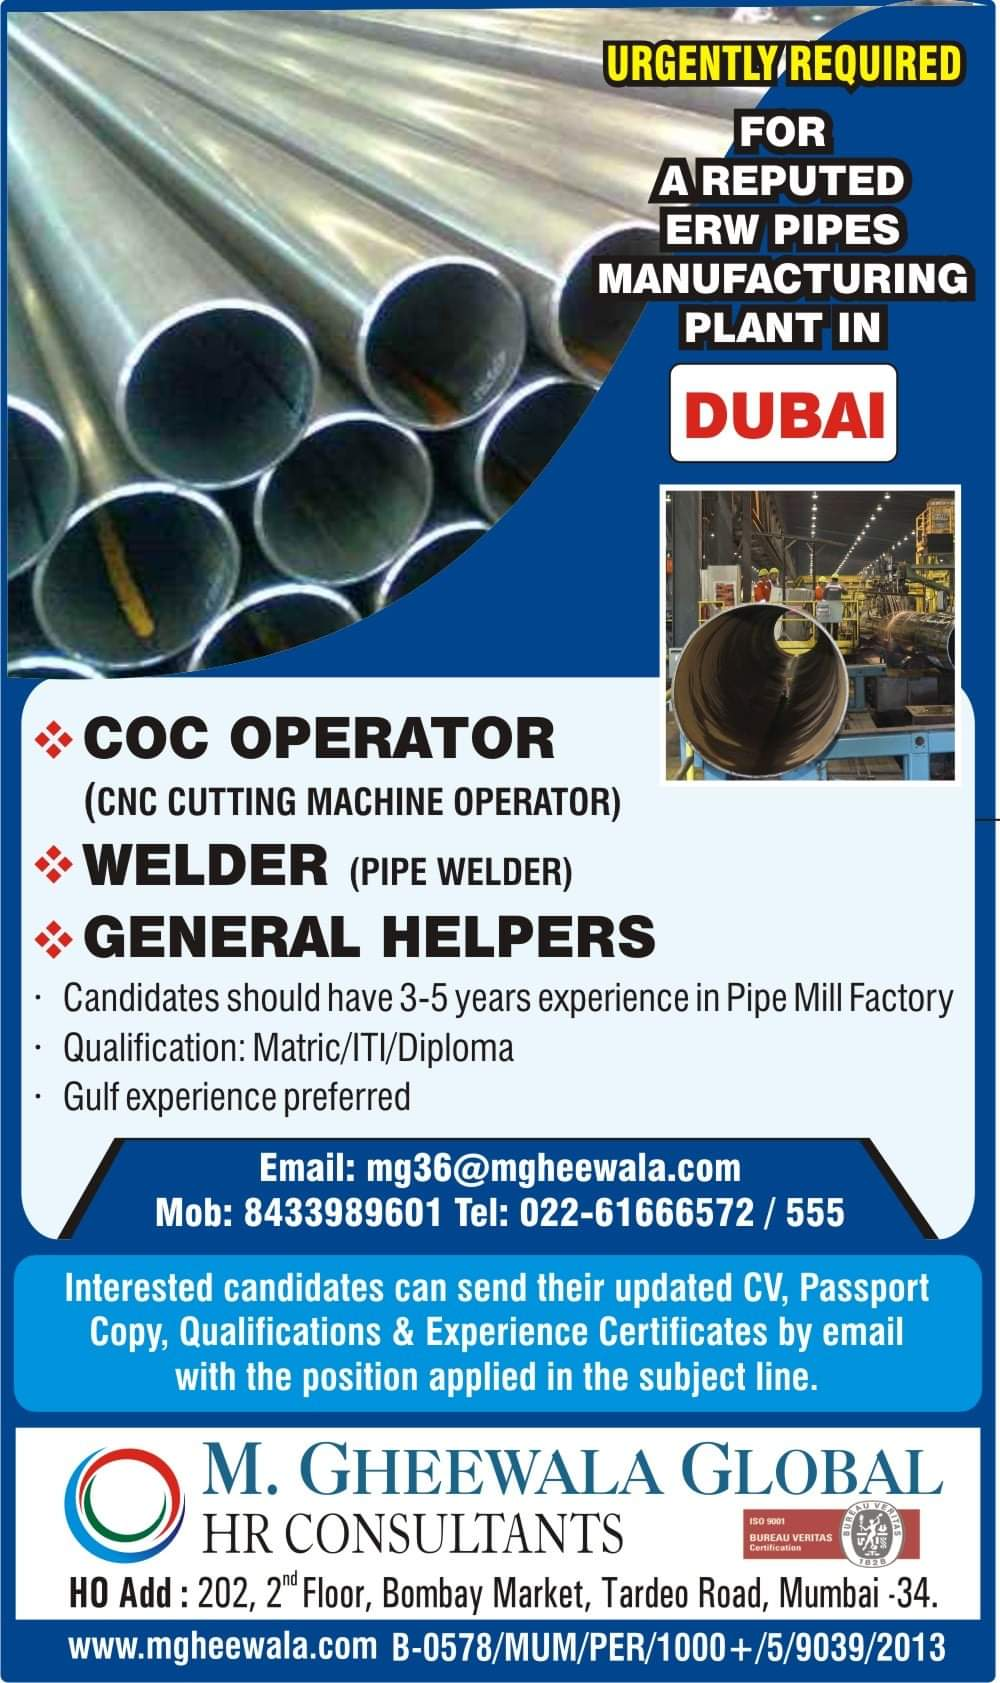 URGENTLY REQUIRED FOR A REPUTED ERW PIPES MANUFACTURING PLANT IN DUBAI